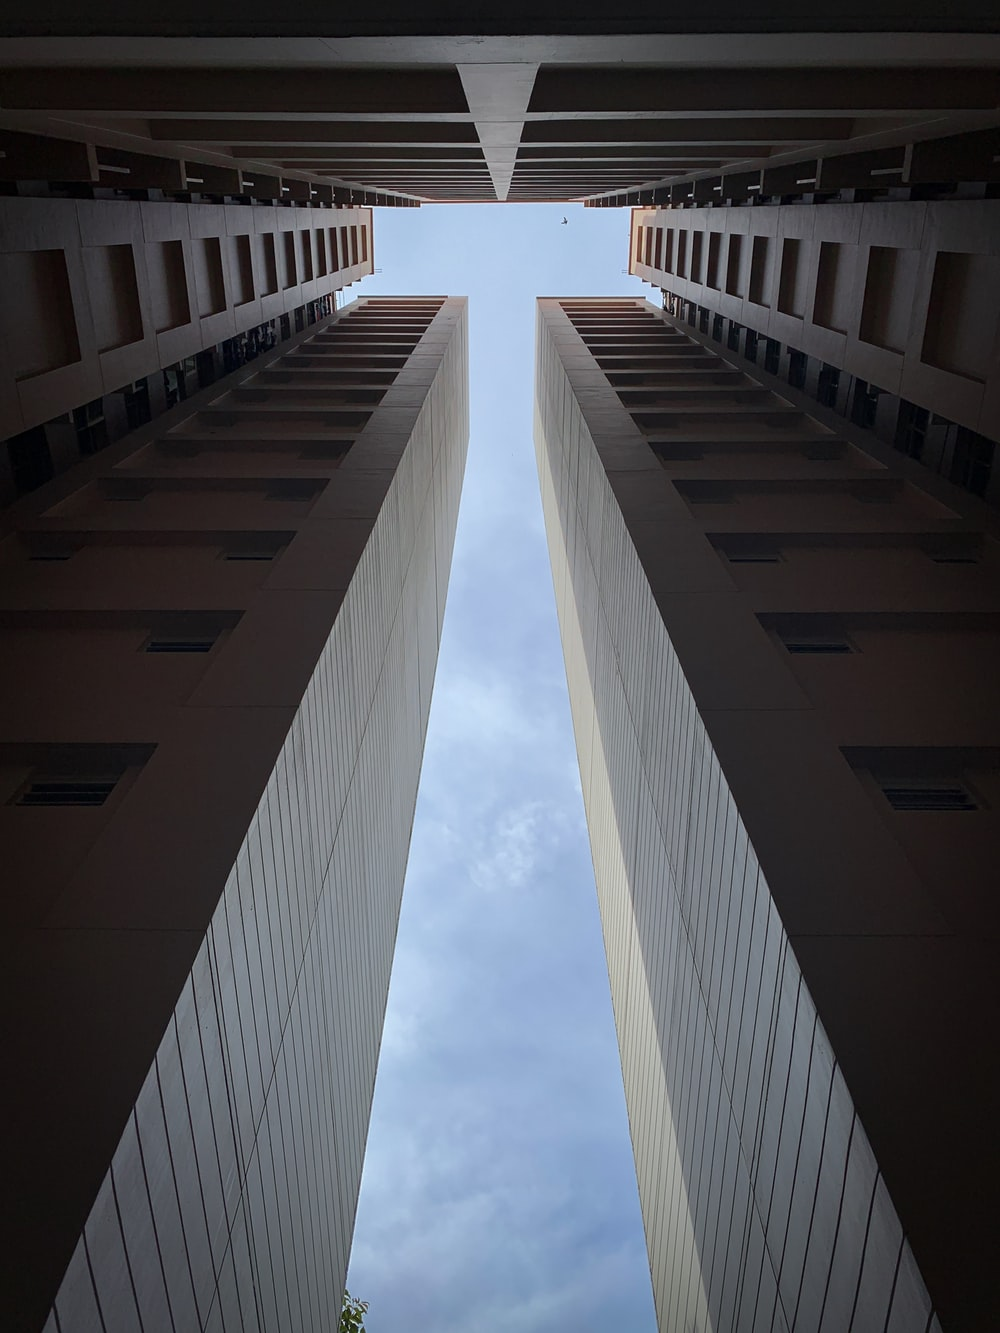 low-angle photo of high-rise buildings under blue sky